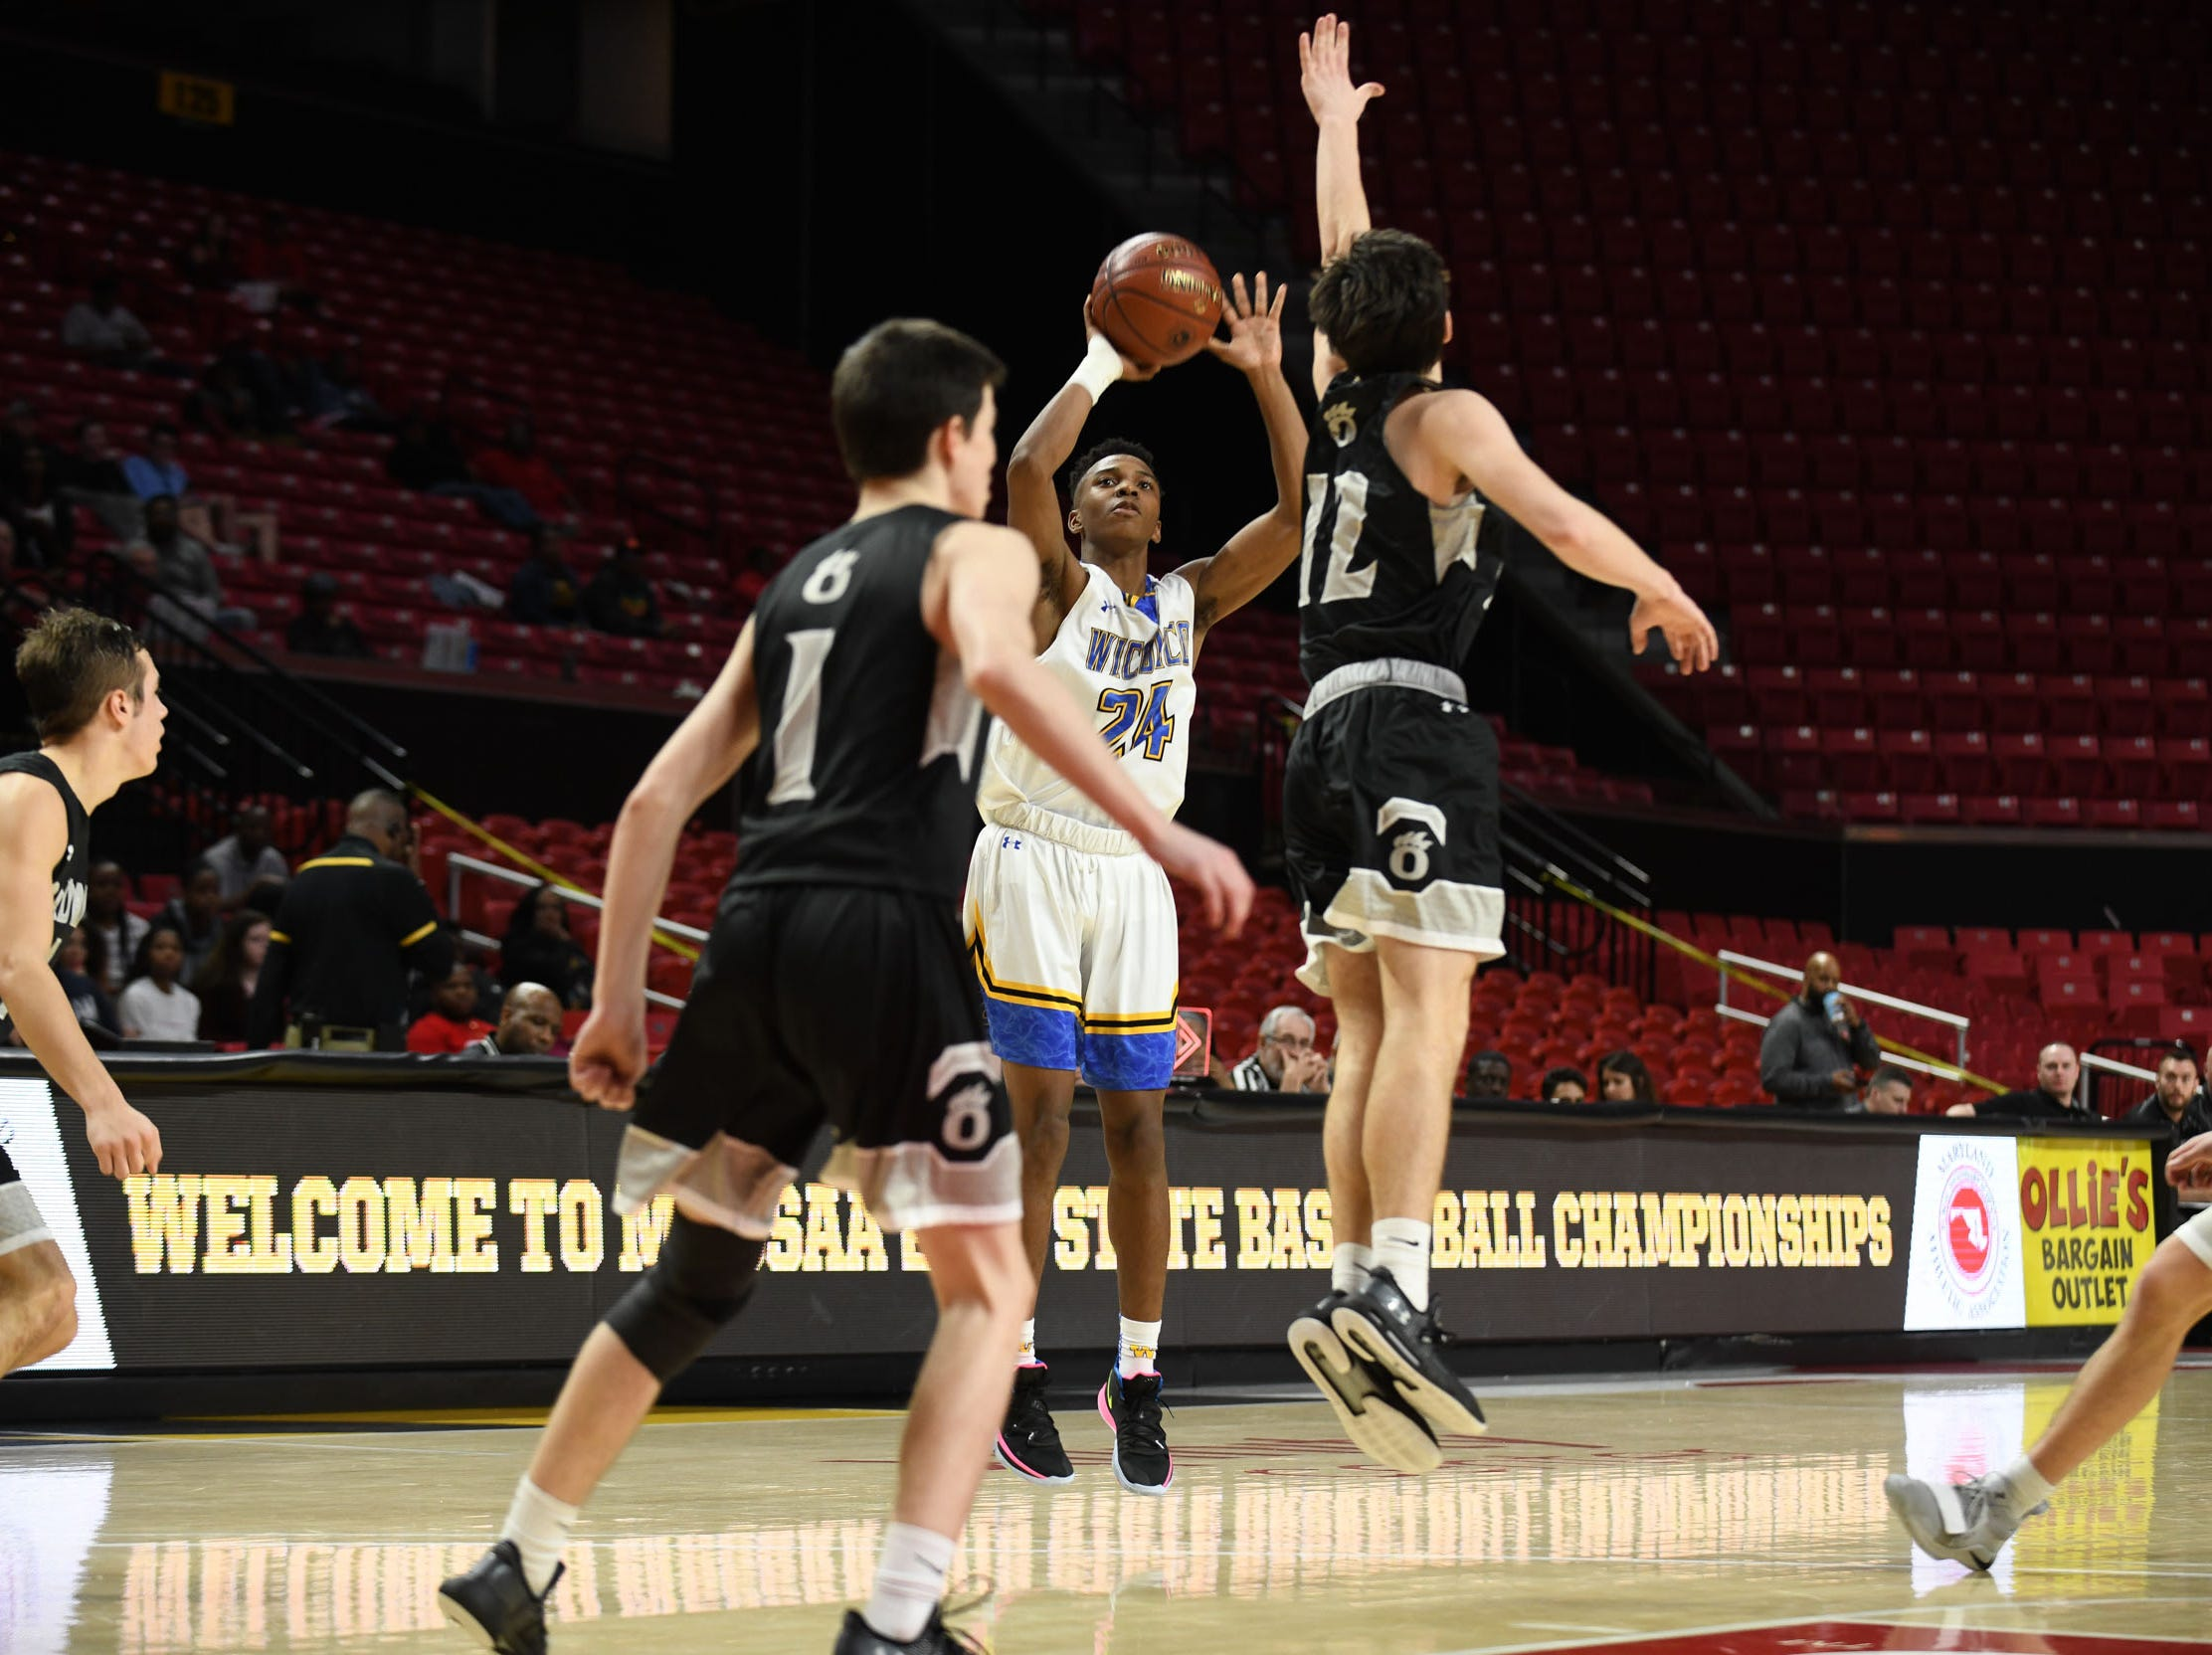 Wi-Hi's Jaden Baker with the shot against Oakdale during the MPSSAA semifinals at the Xfinity Center in College Park, Md. Friday, March 15, 2019.